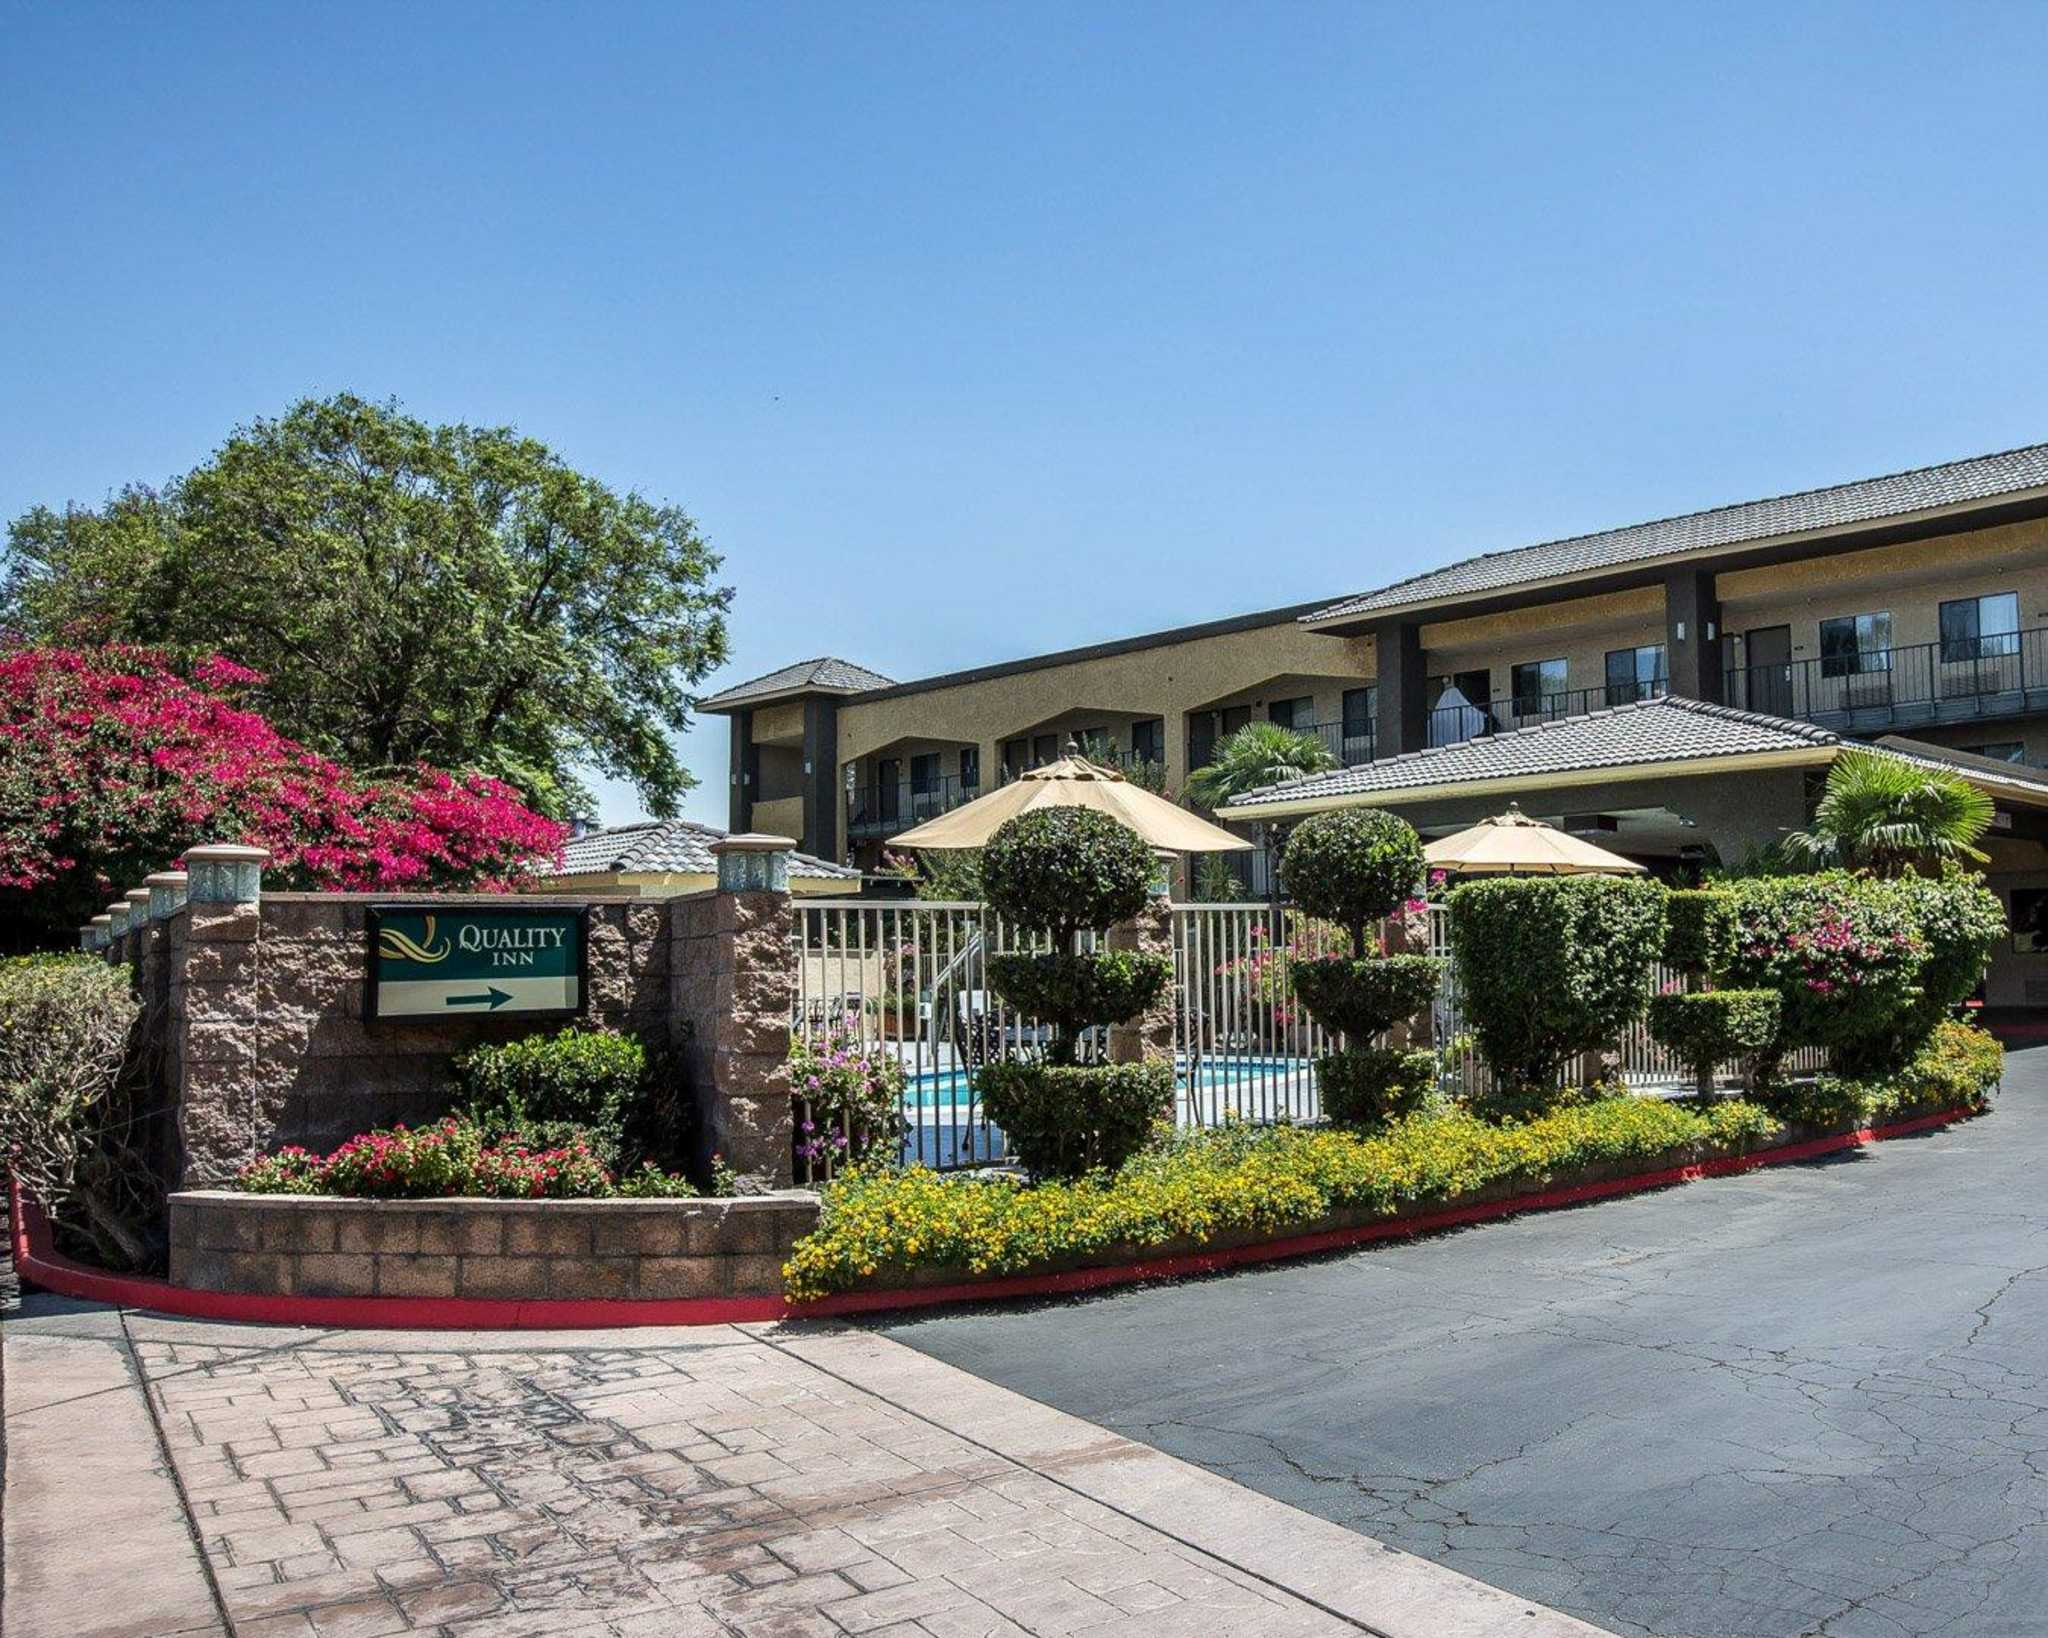 Quality inn ontario airport convention center in ontario for Ontario motor inn ontario ca